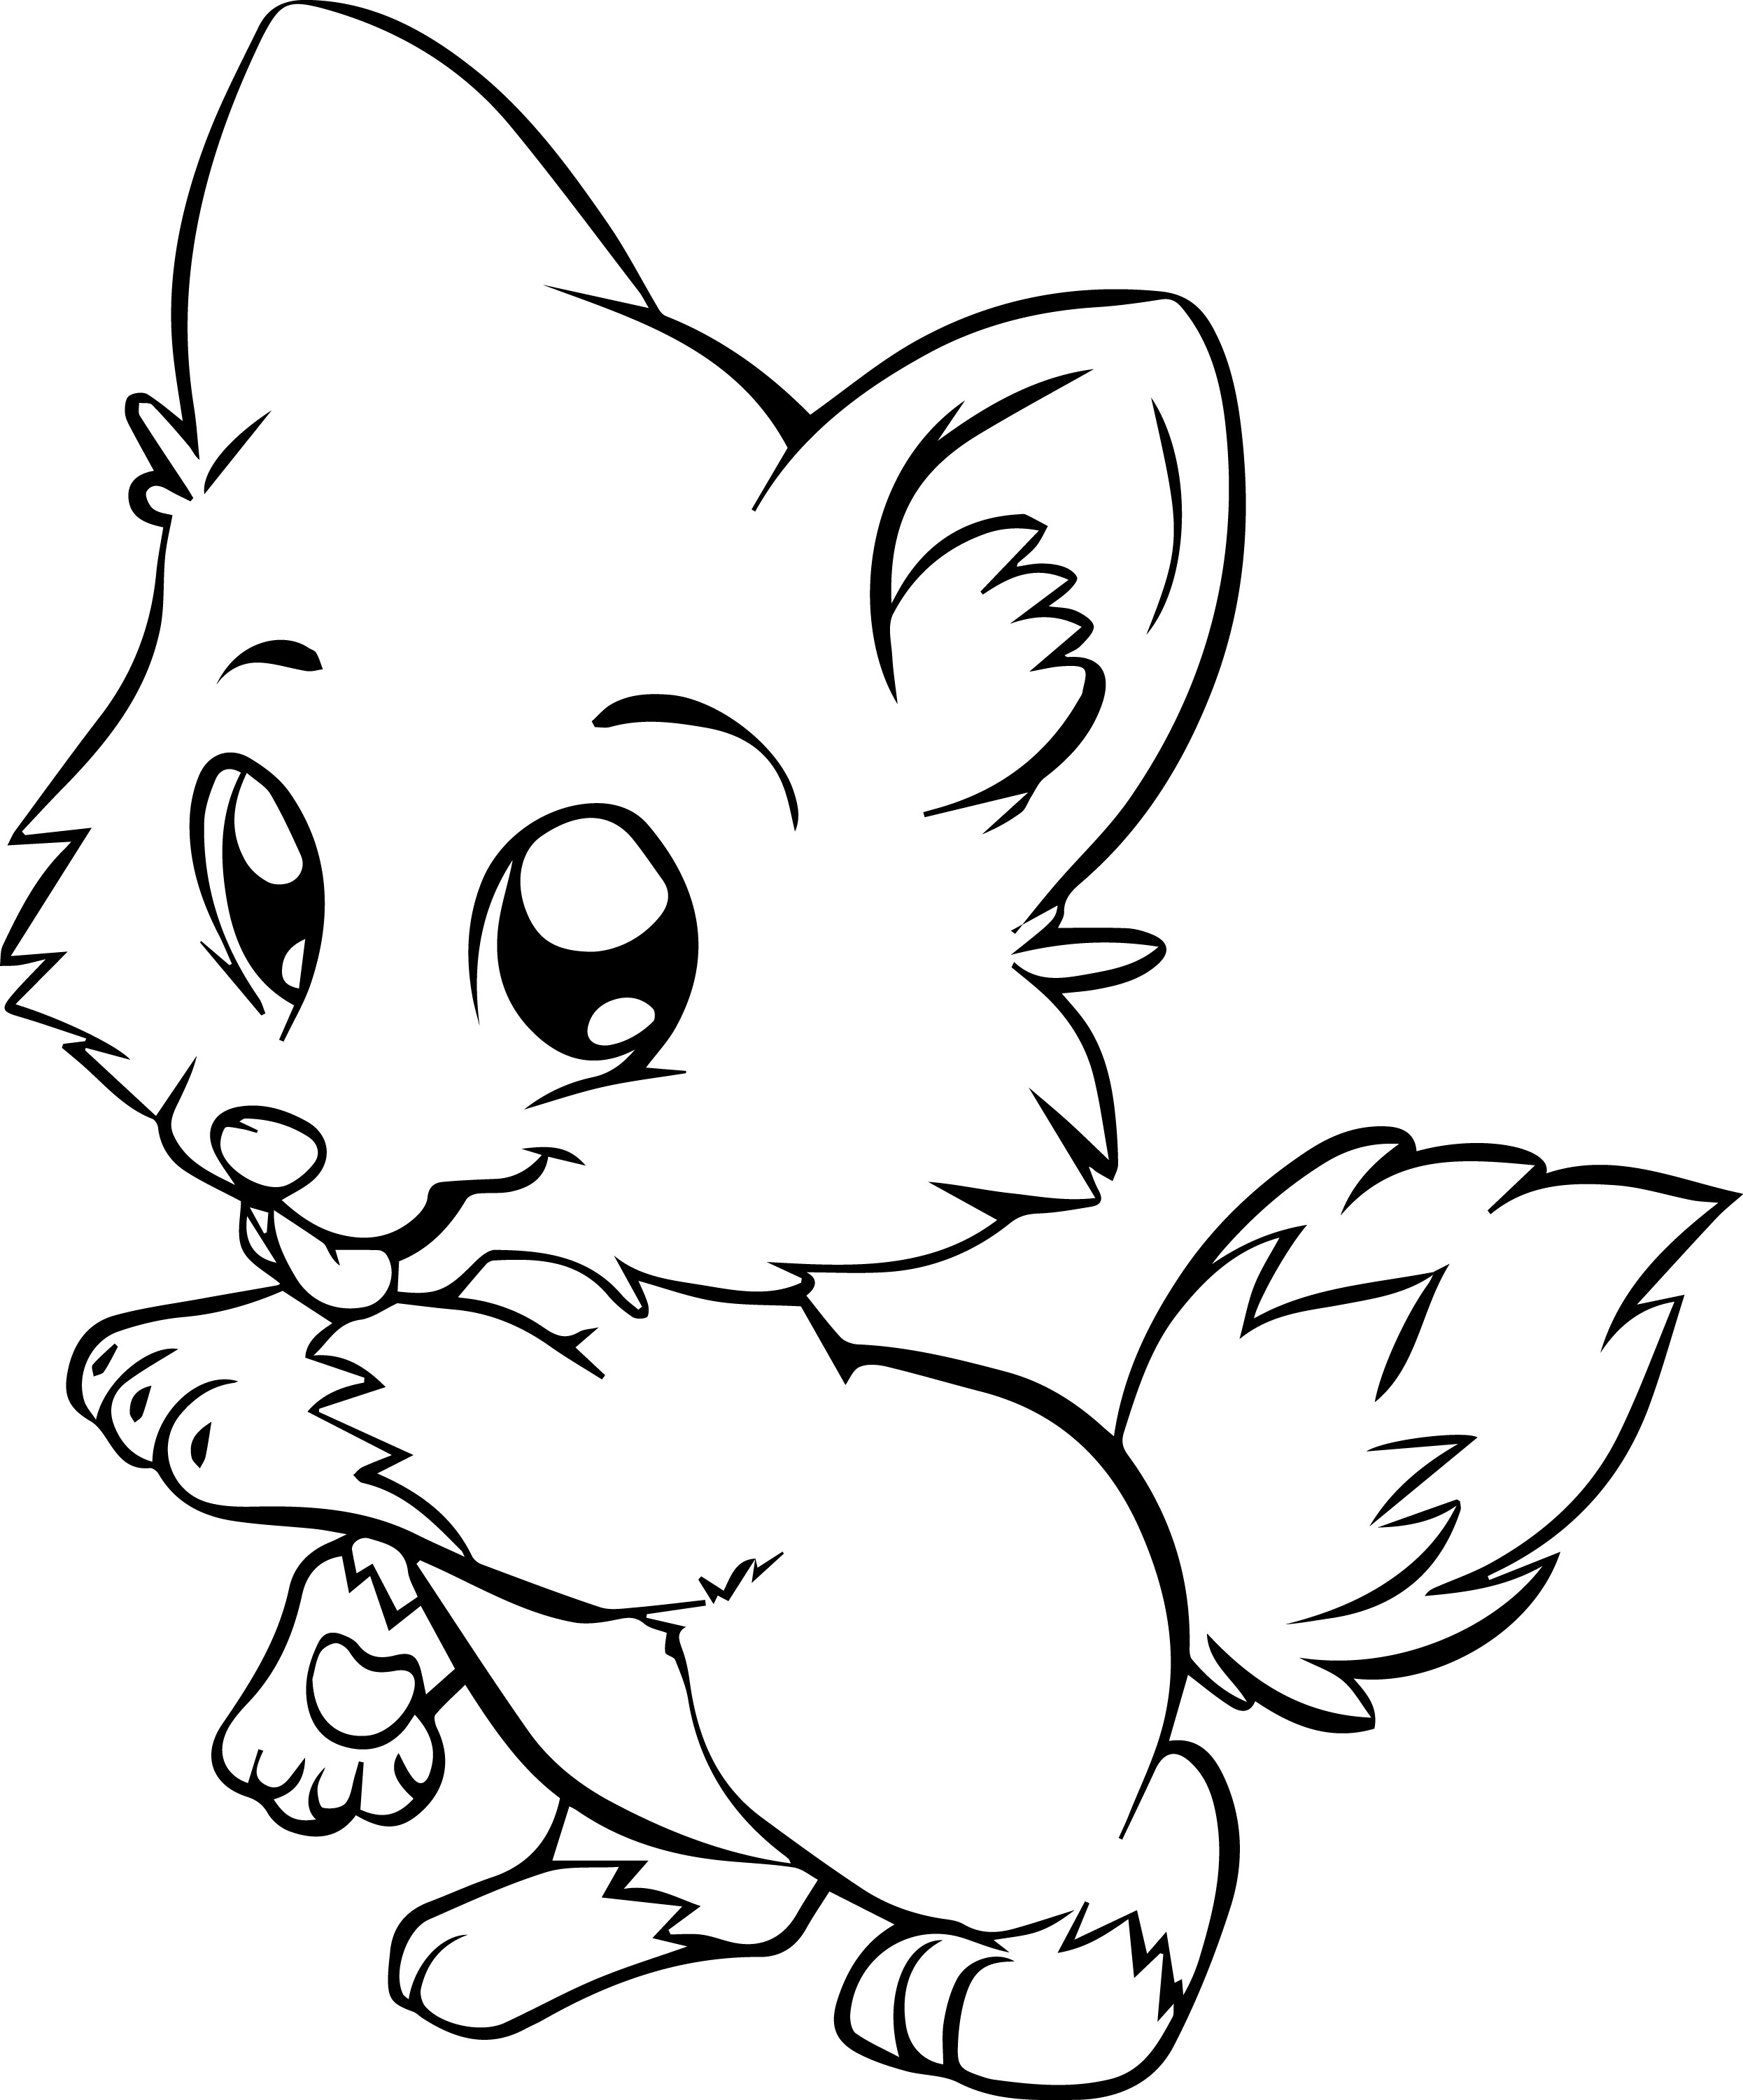 2491x3002 Coloring Pages Cute Animals To Print New Drawn Narwhal Arctic